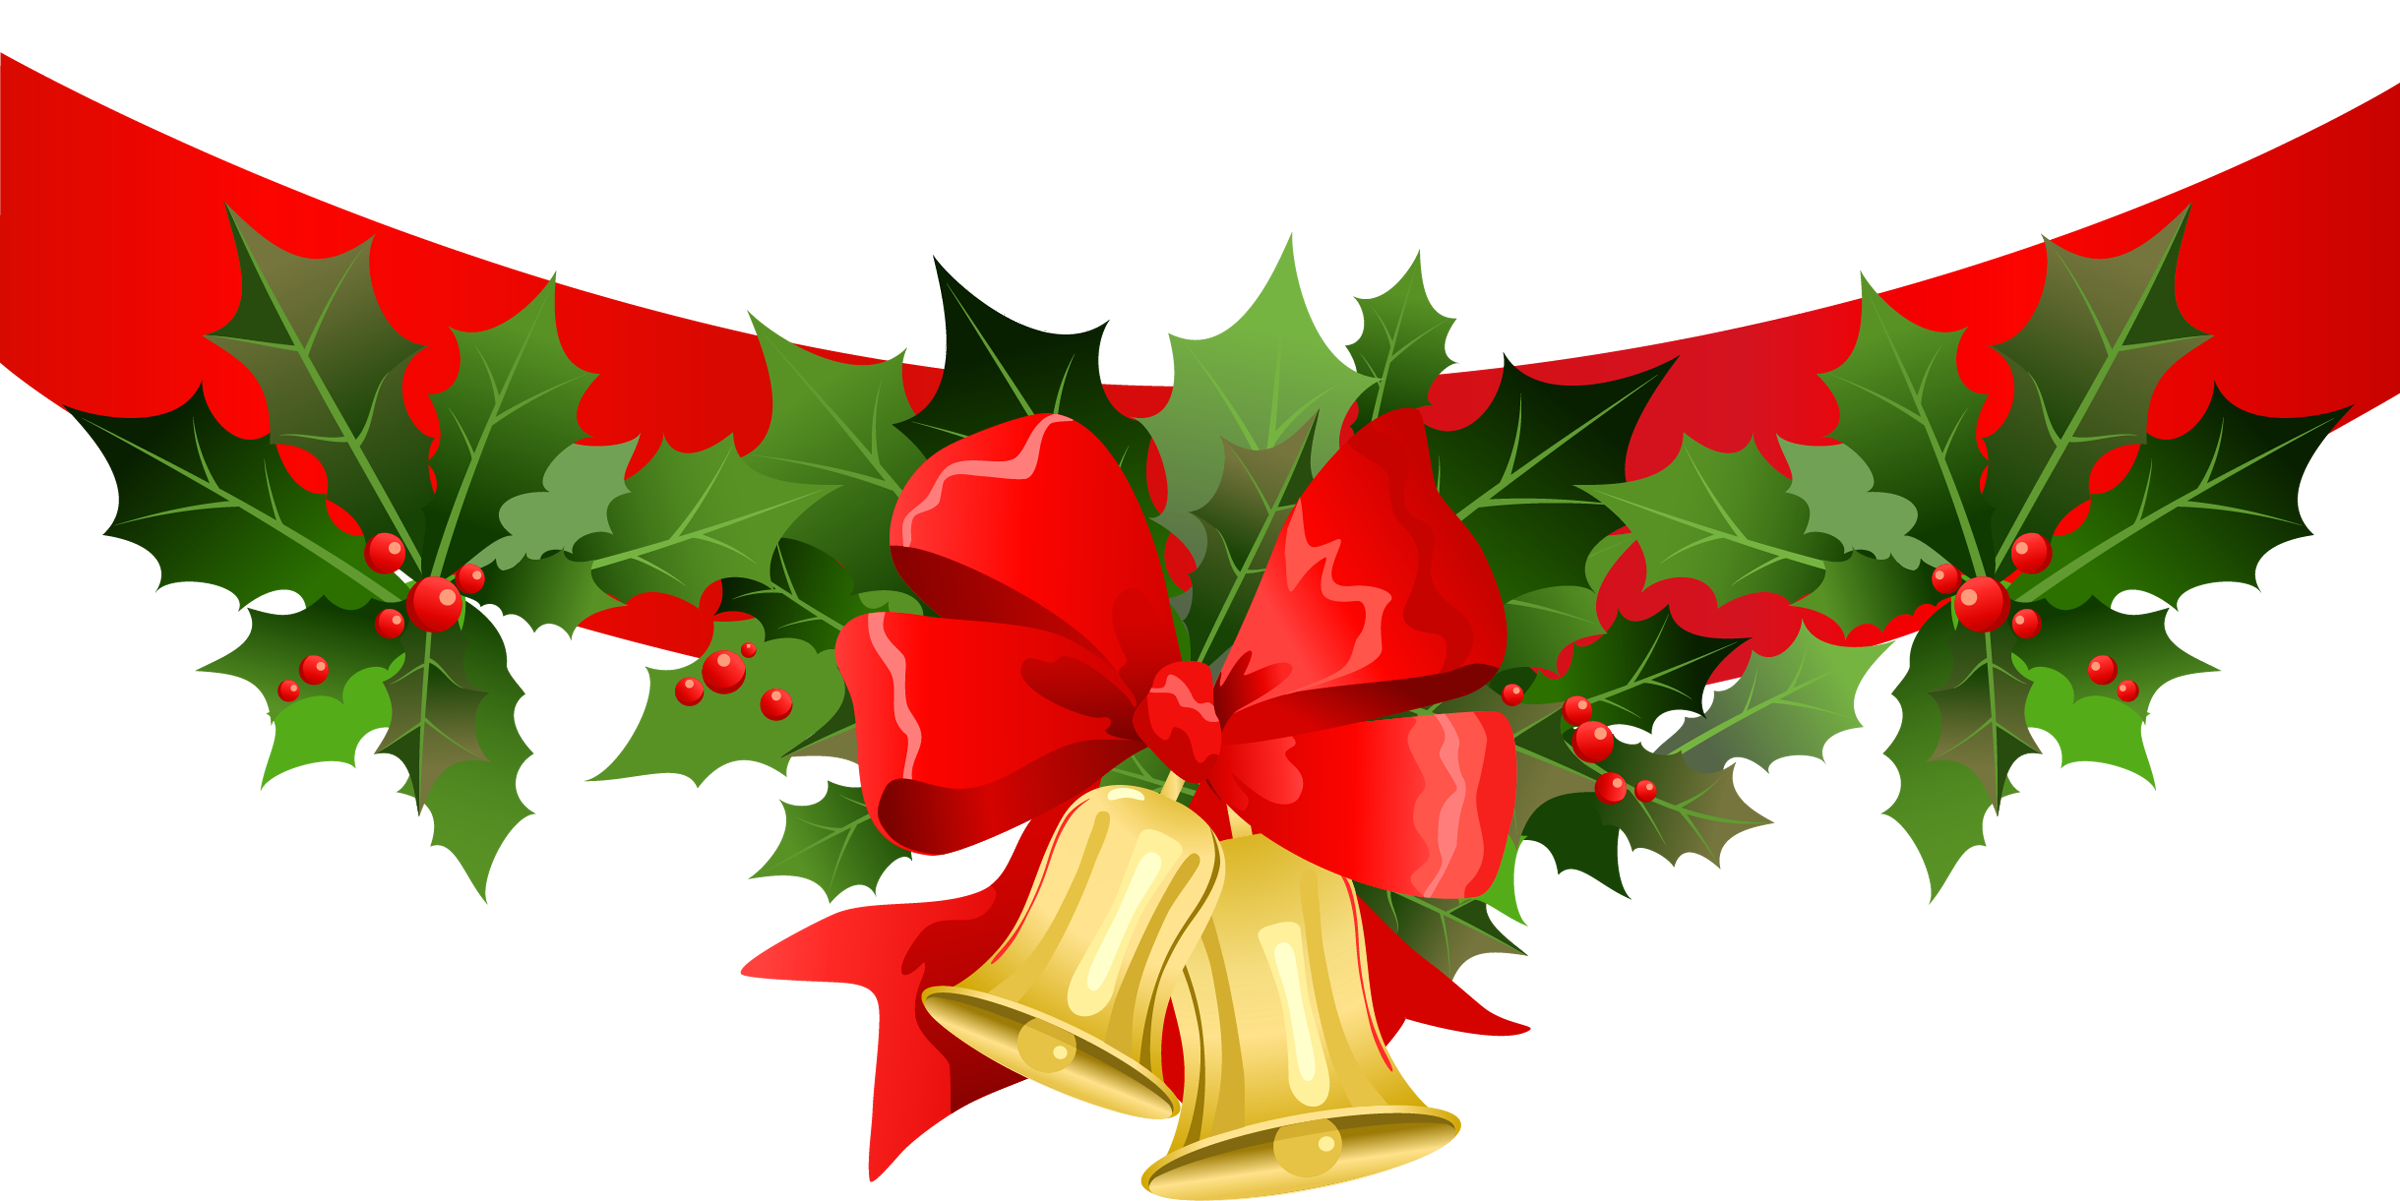 Upha holiday celebration dec. Poinsettias clipart december flower